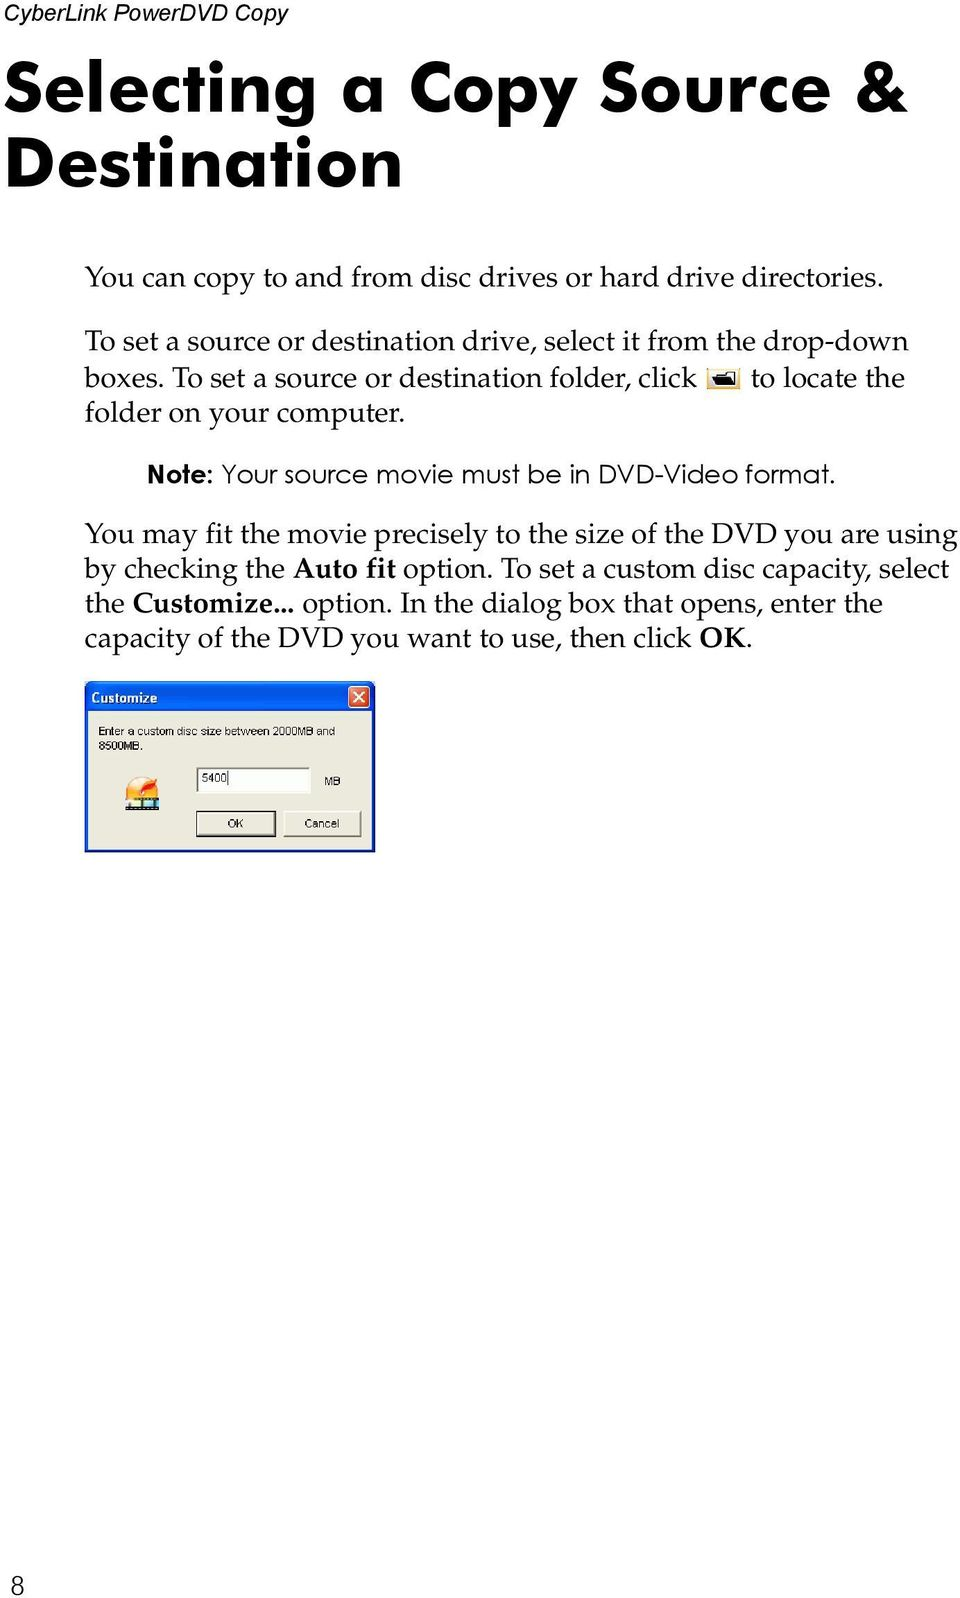 To set a source or destination folder, click to locate the folder on your computer. Note: Your source movie must be in DVD-Video format.